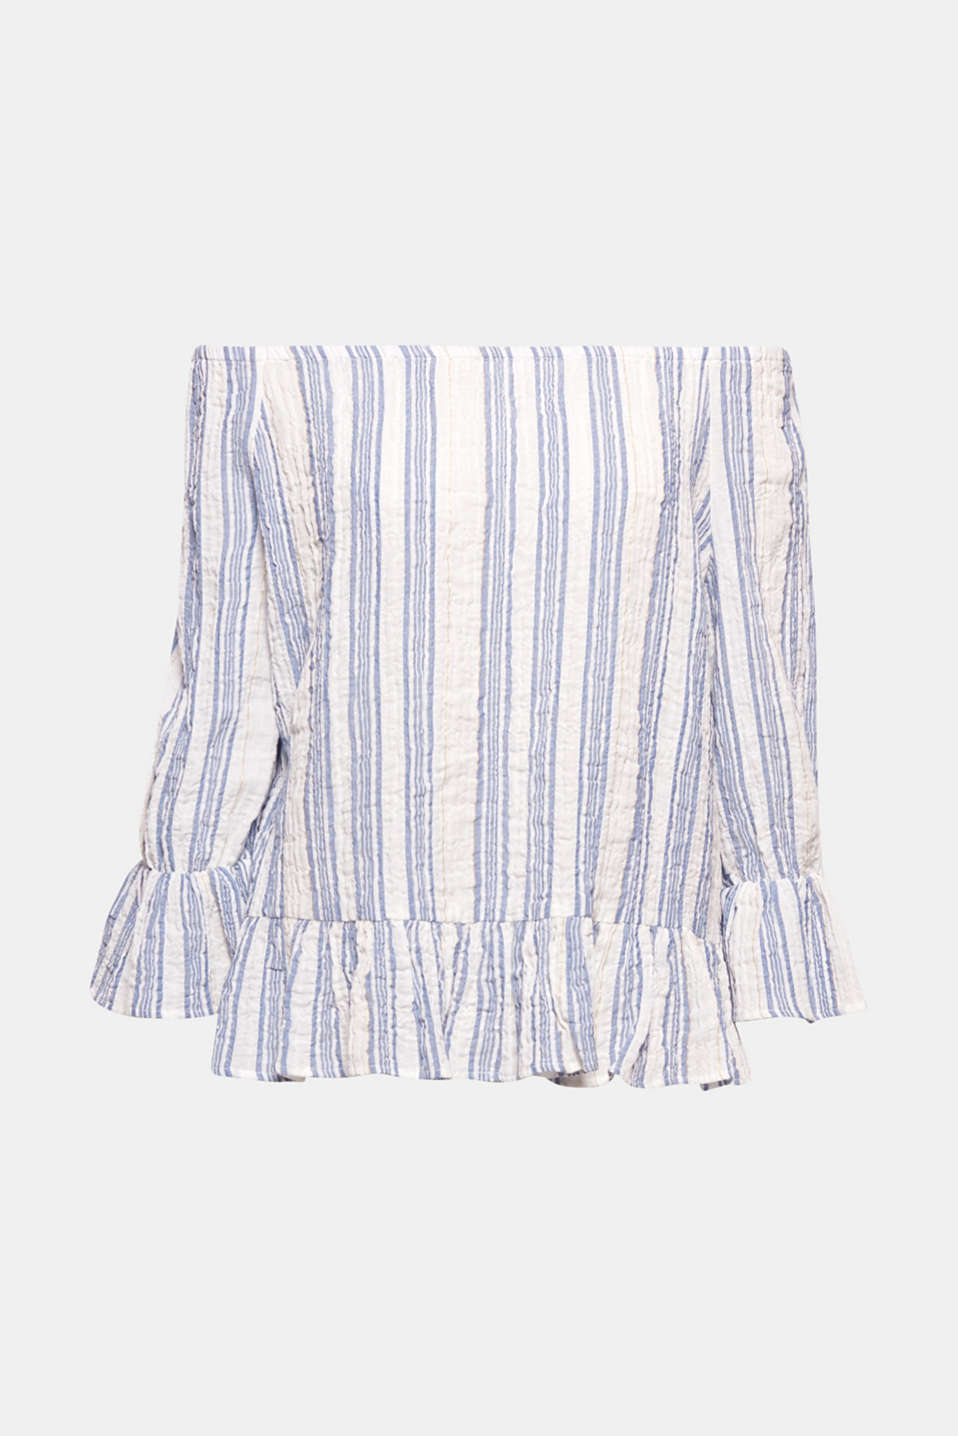 One blouse, lots of styling ideas! This feminine off-the-shoulder blouse in a nautical striped look in delicate crinkle fabric is so versatile to mix and match.